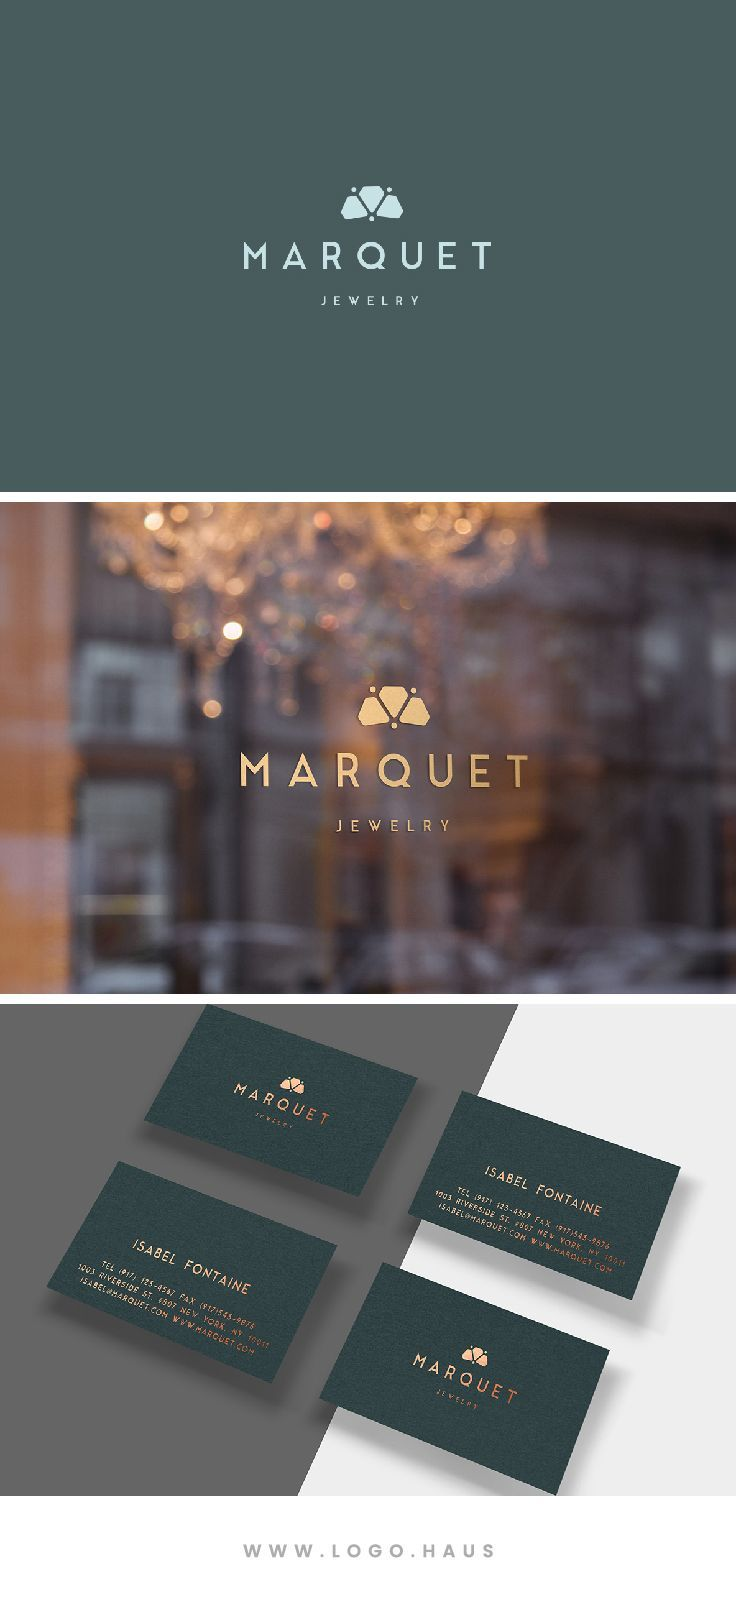 The Marquet Logo Design Kit available from Logo.Haus.